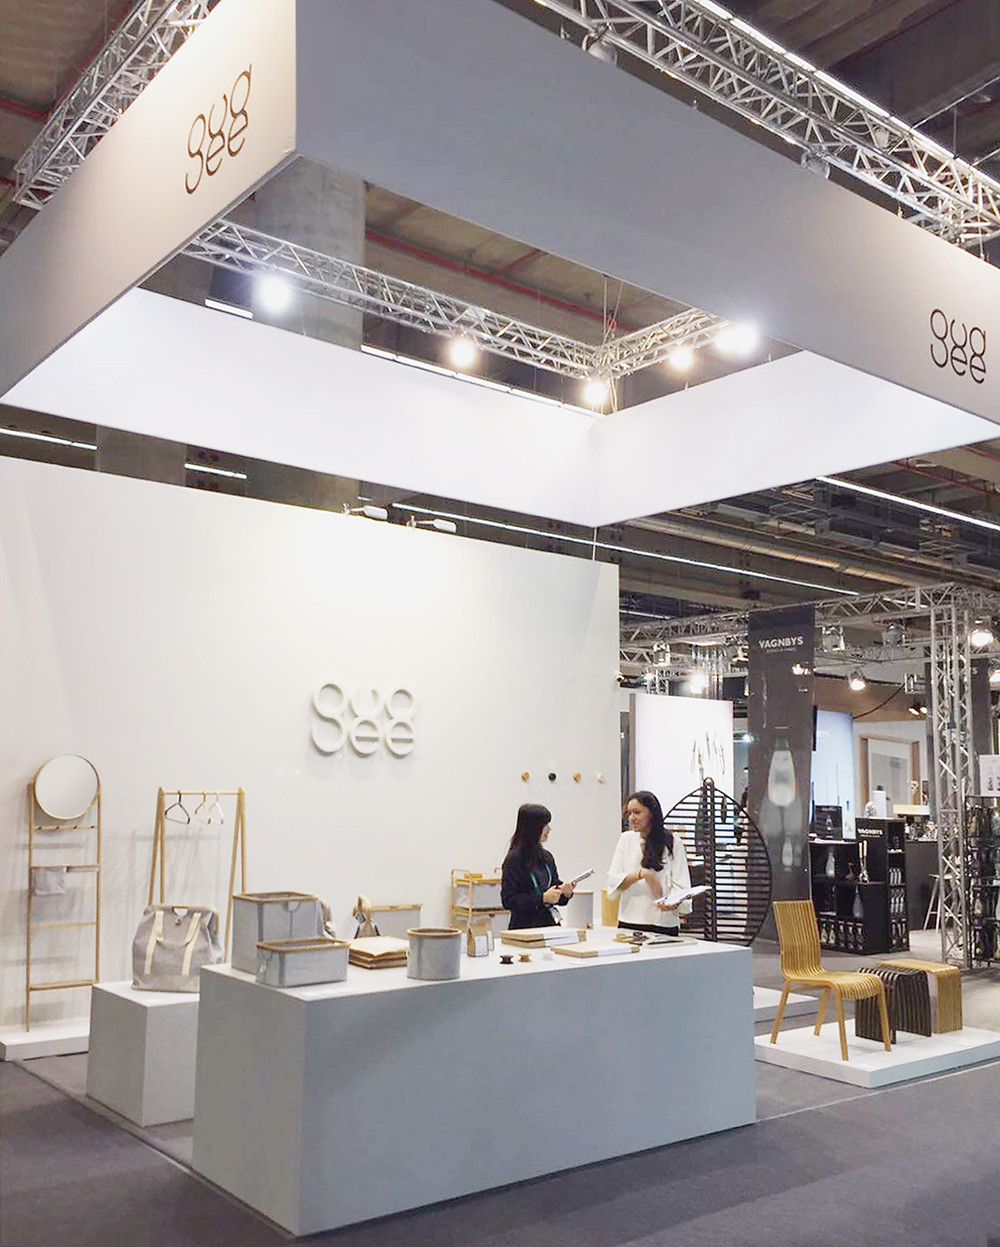 Gudee Blog-exhibition design-Gudee unveils new collection at Ambiente 2018